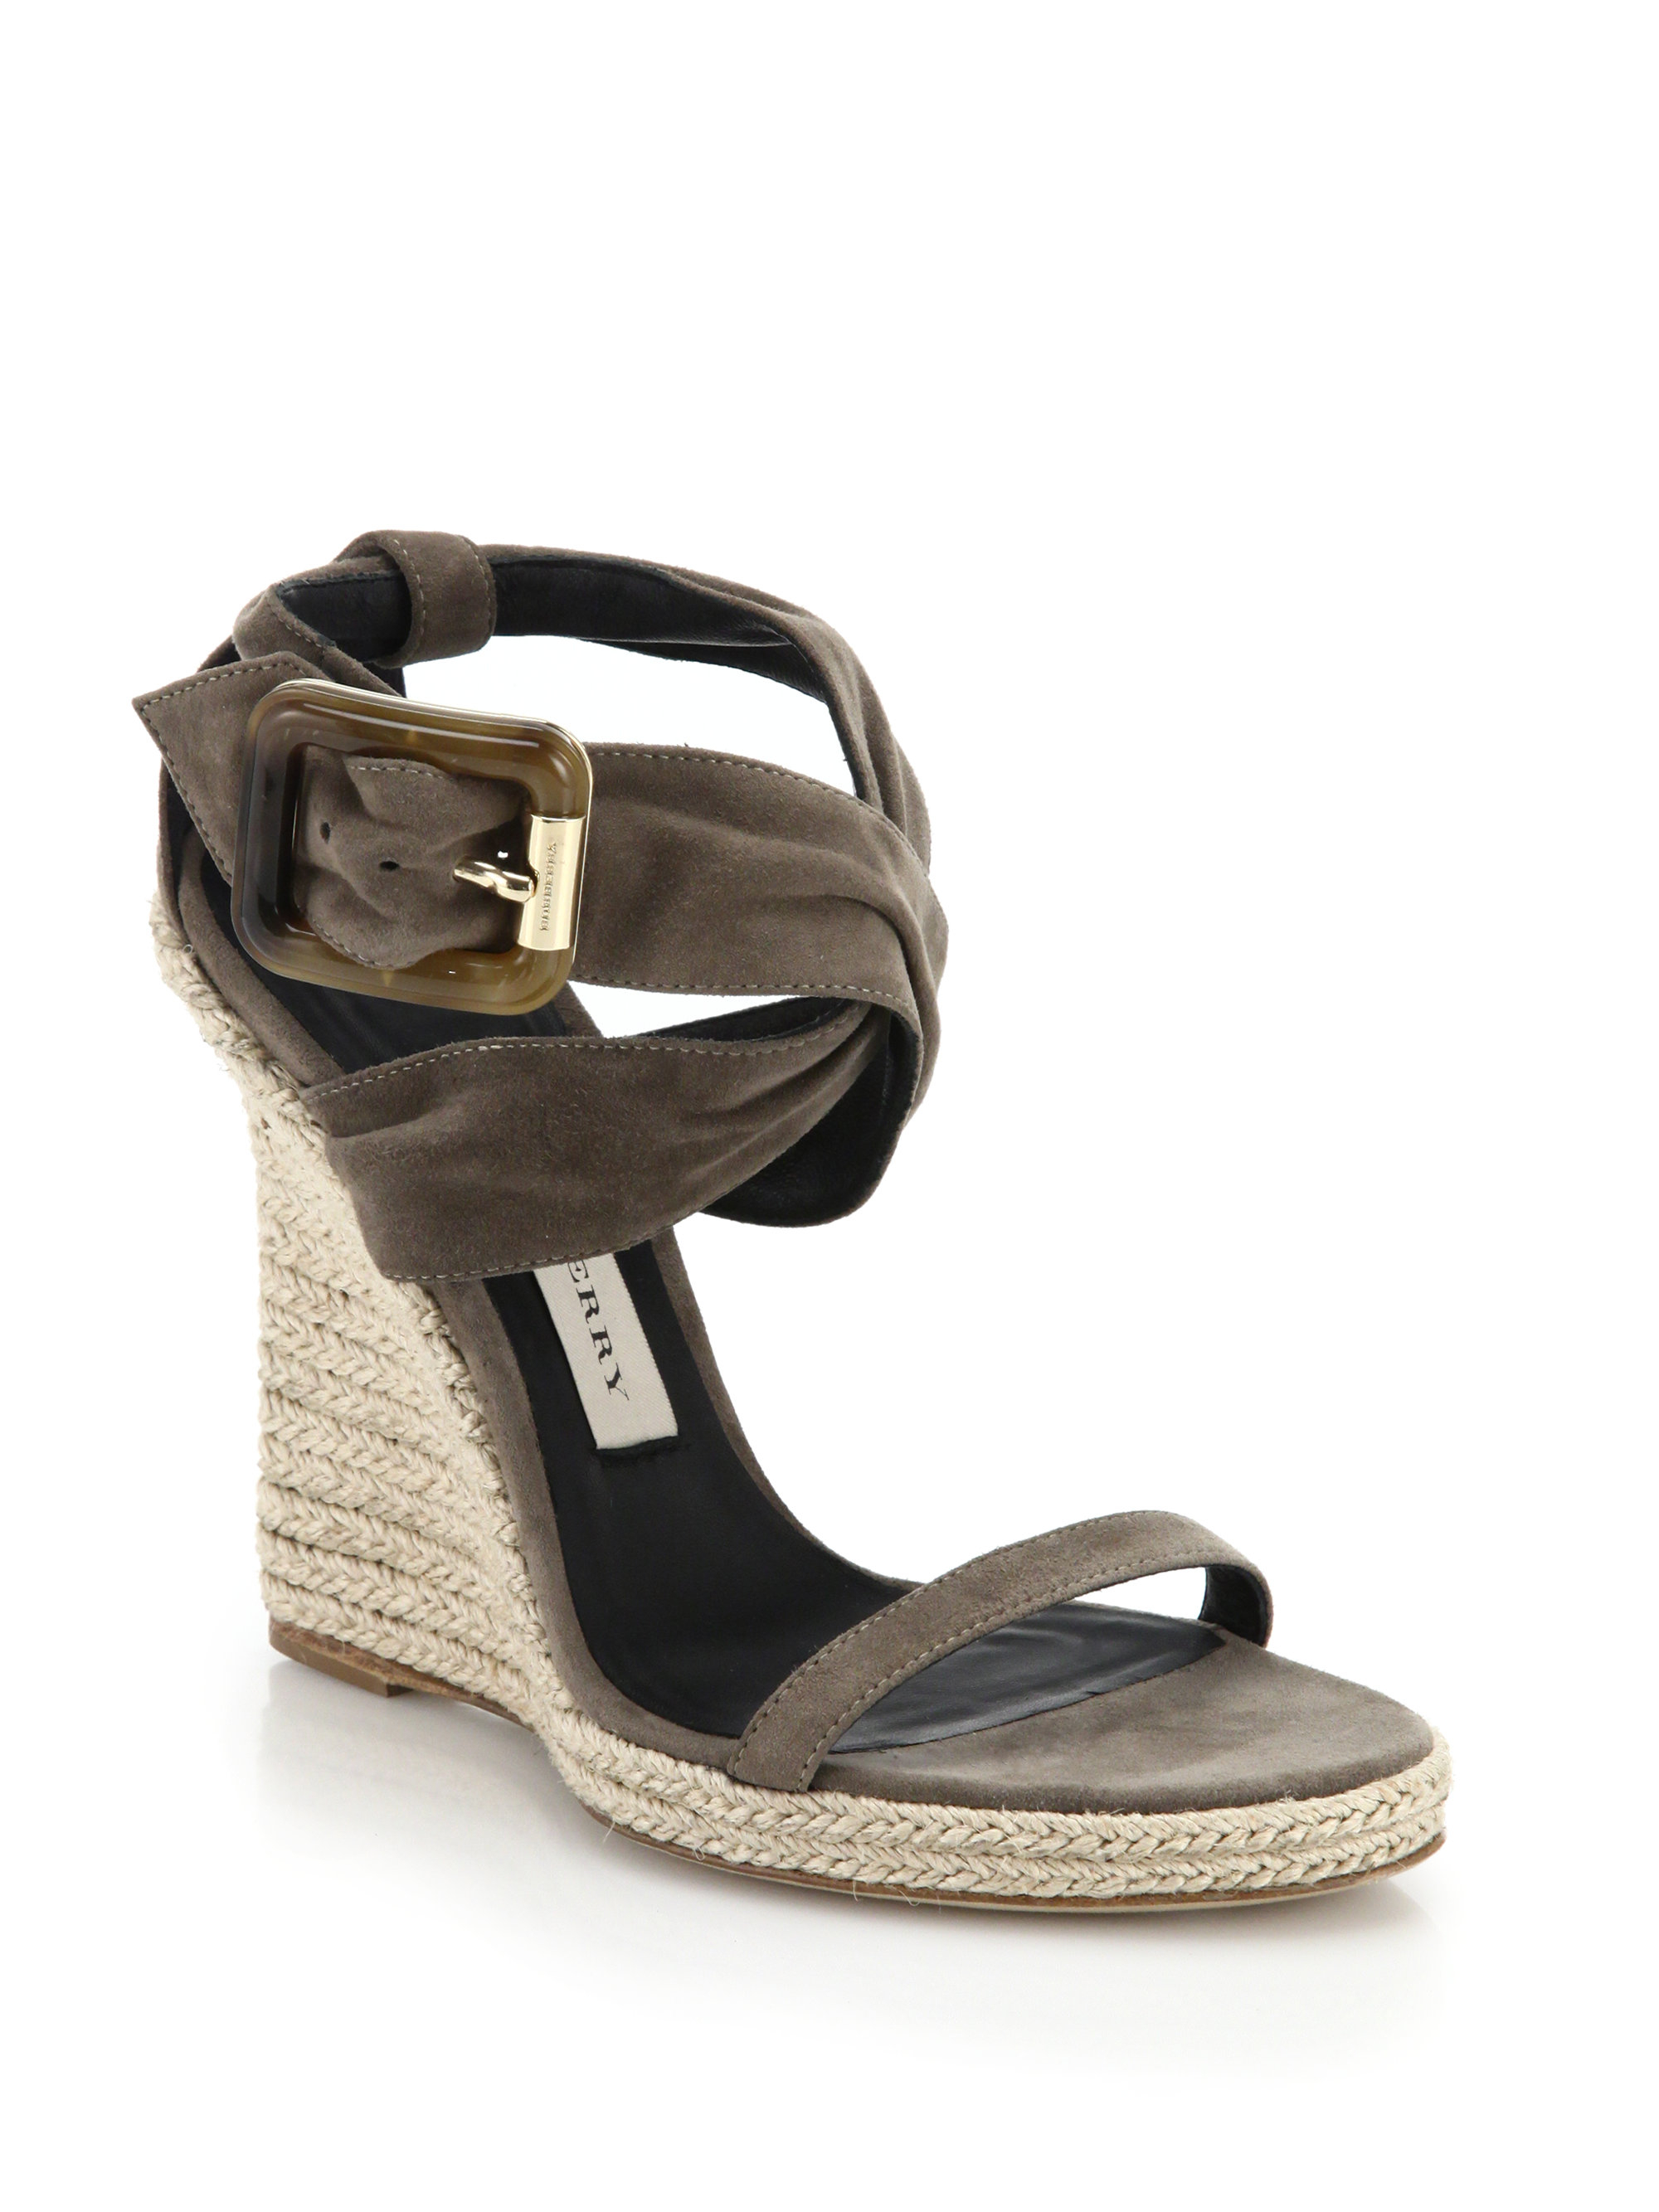 83854e34b37 Lyst - Burberry Catsbrook Suede Espadrille Wedge Sandals in Gray